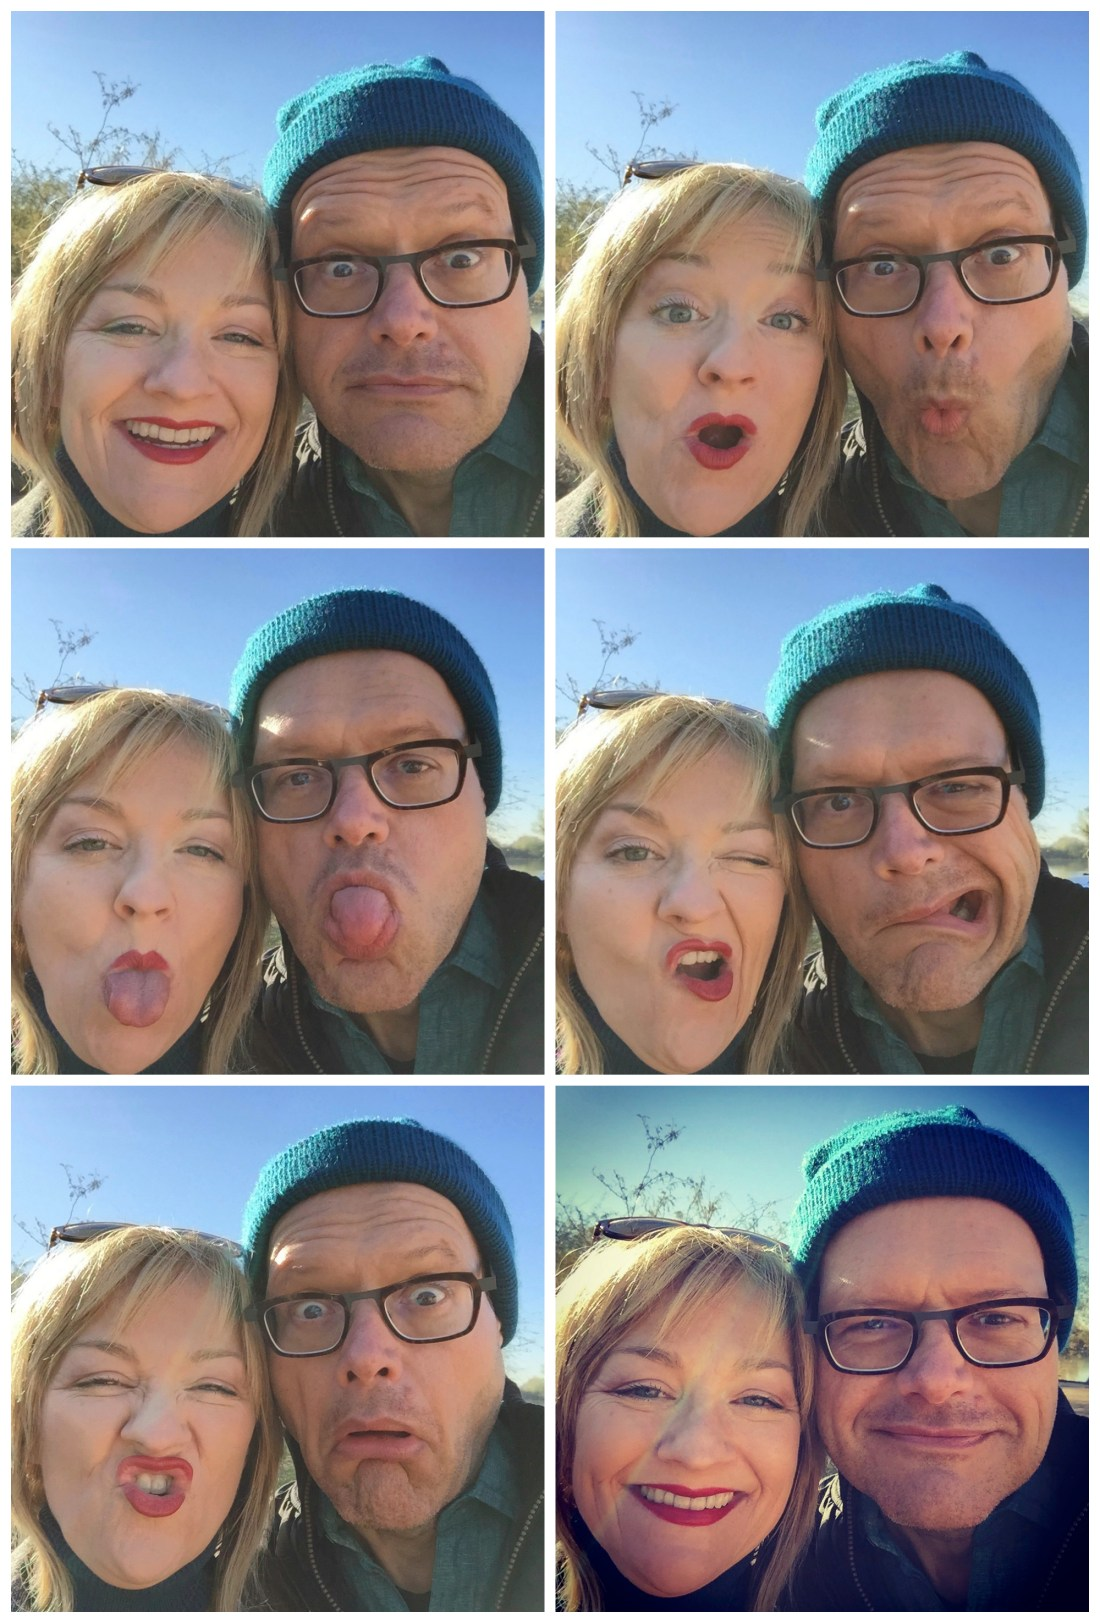 Silly selfie photo booth photos at the Riparian Preserve in Gilbert, AZ